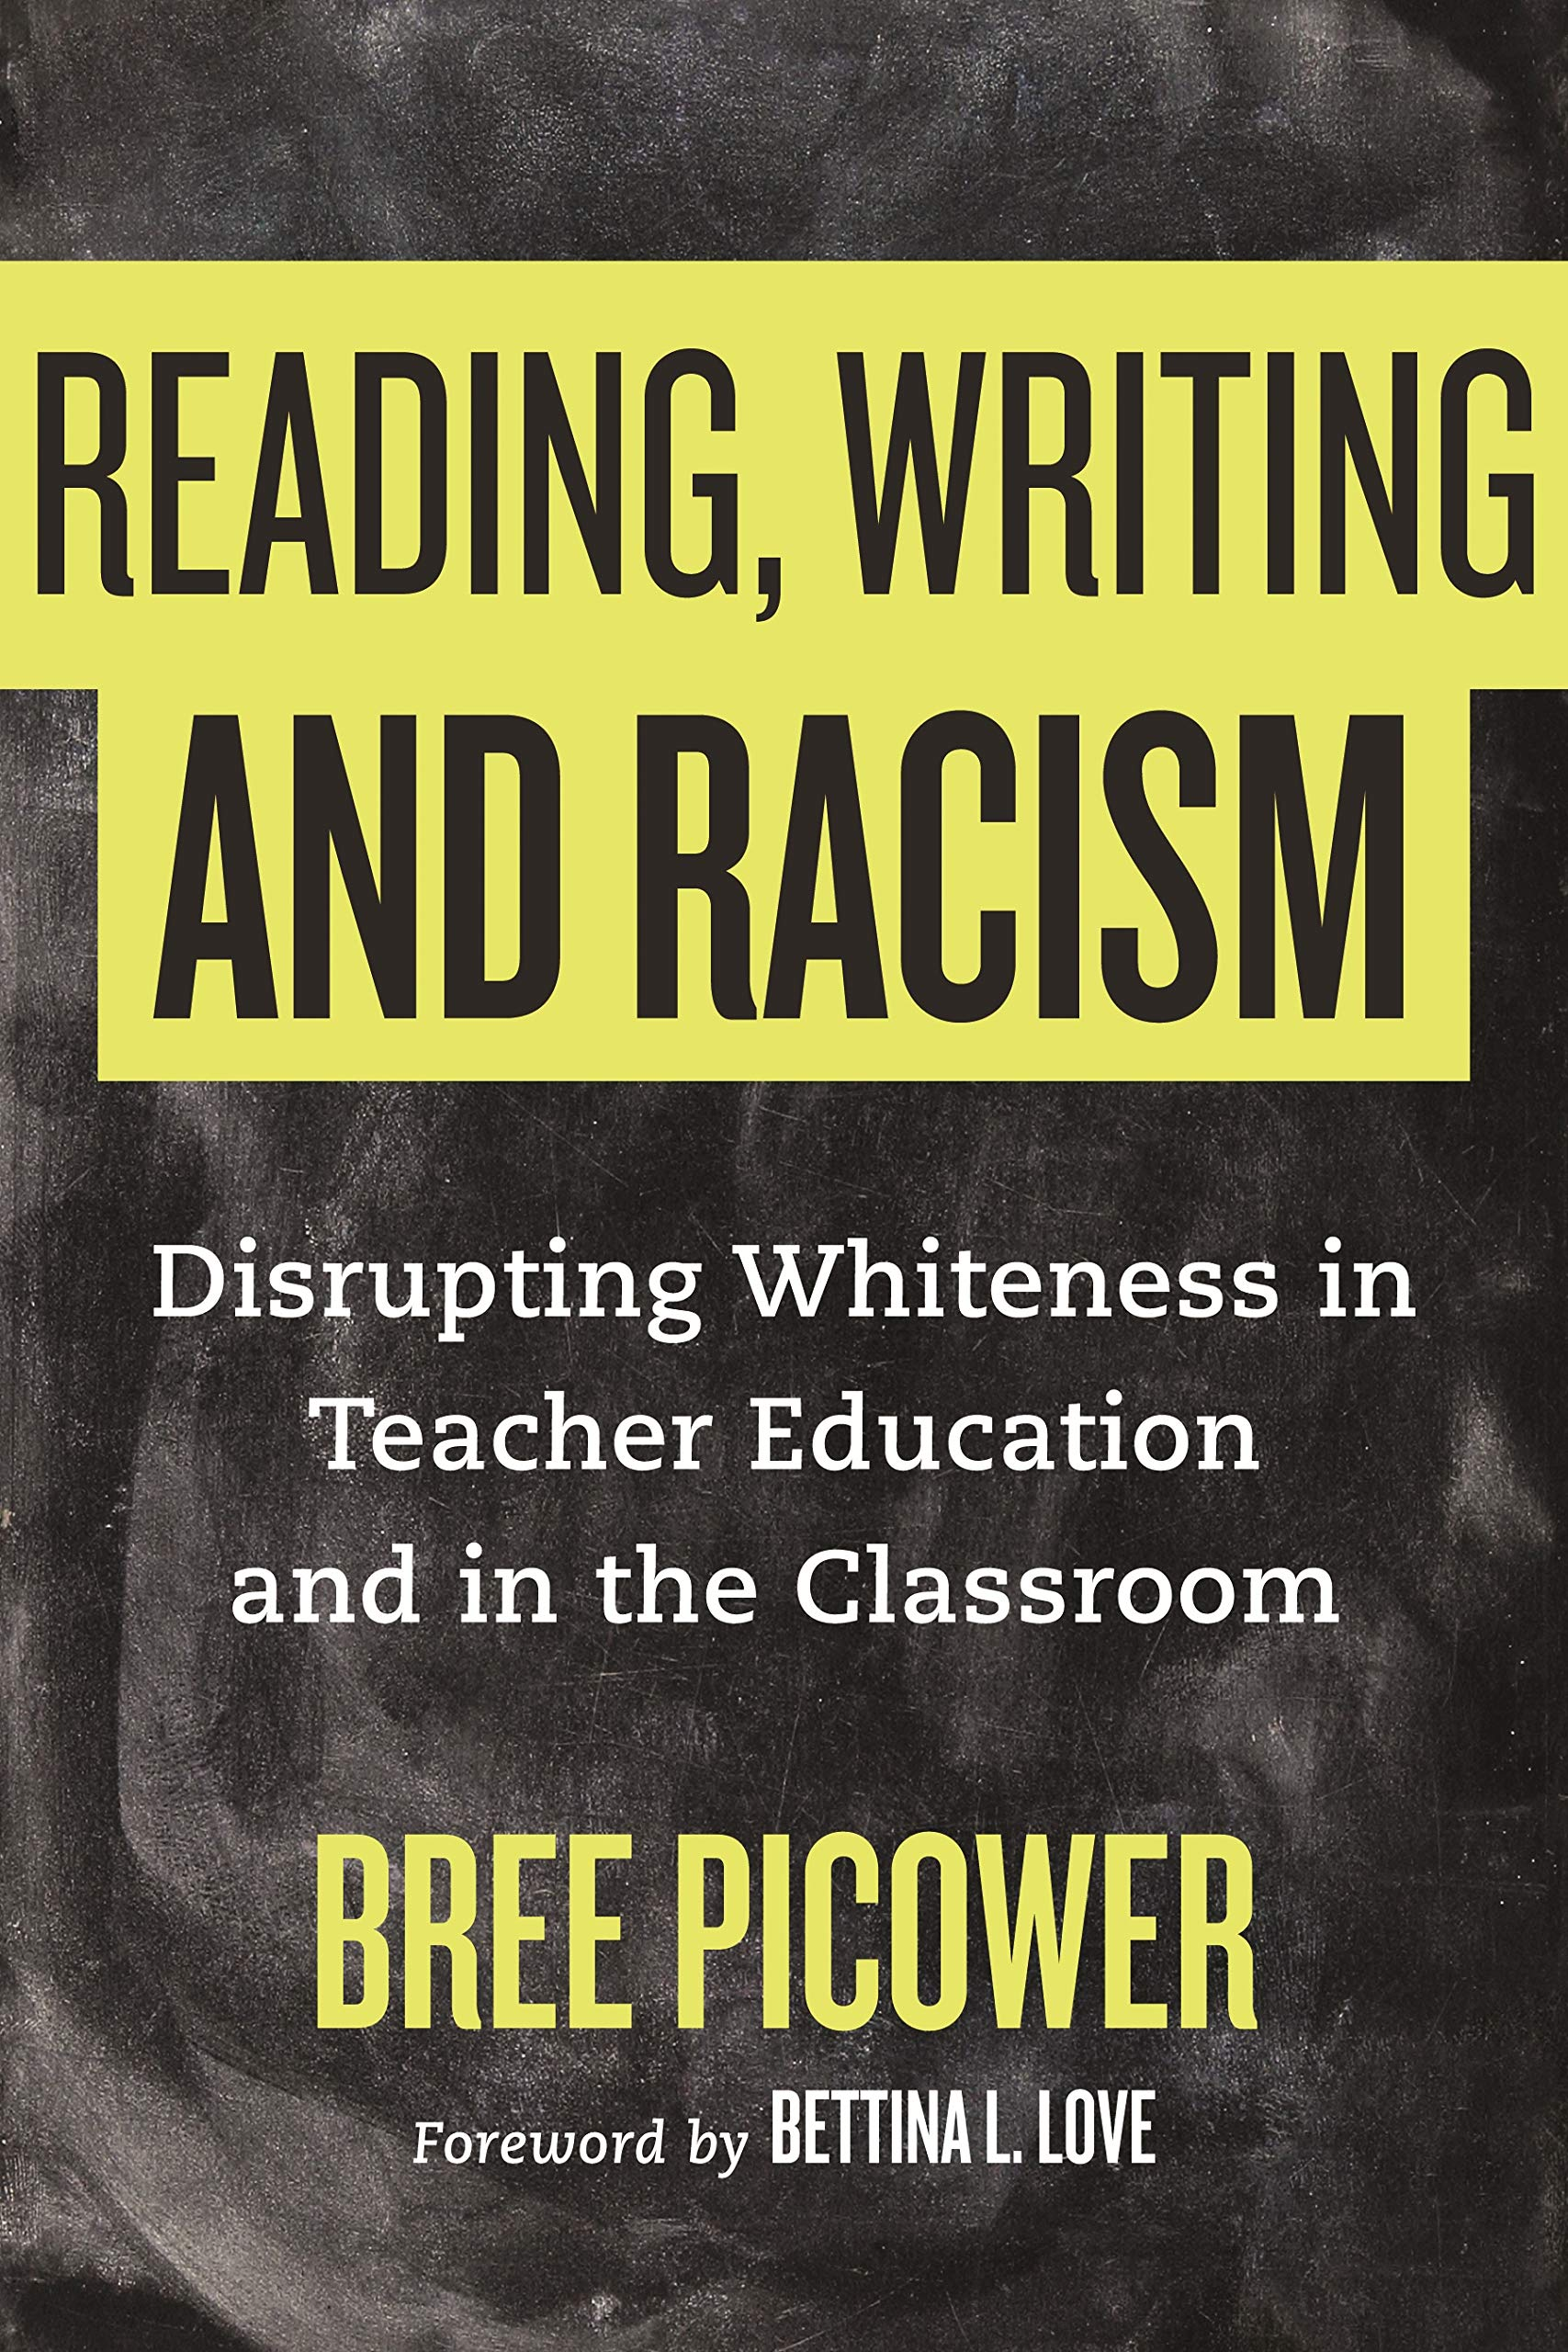 Reading, Writing, and Racism: Disrupting Whiteness in Teacher Education and in the Classroom